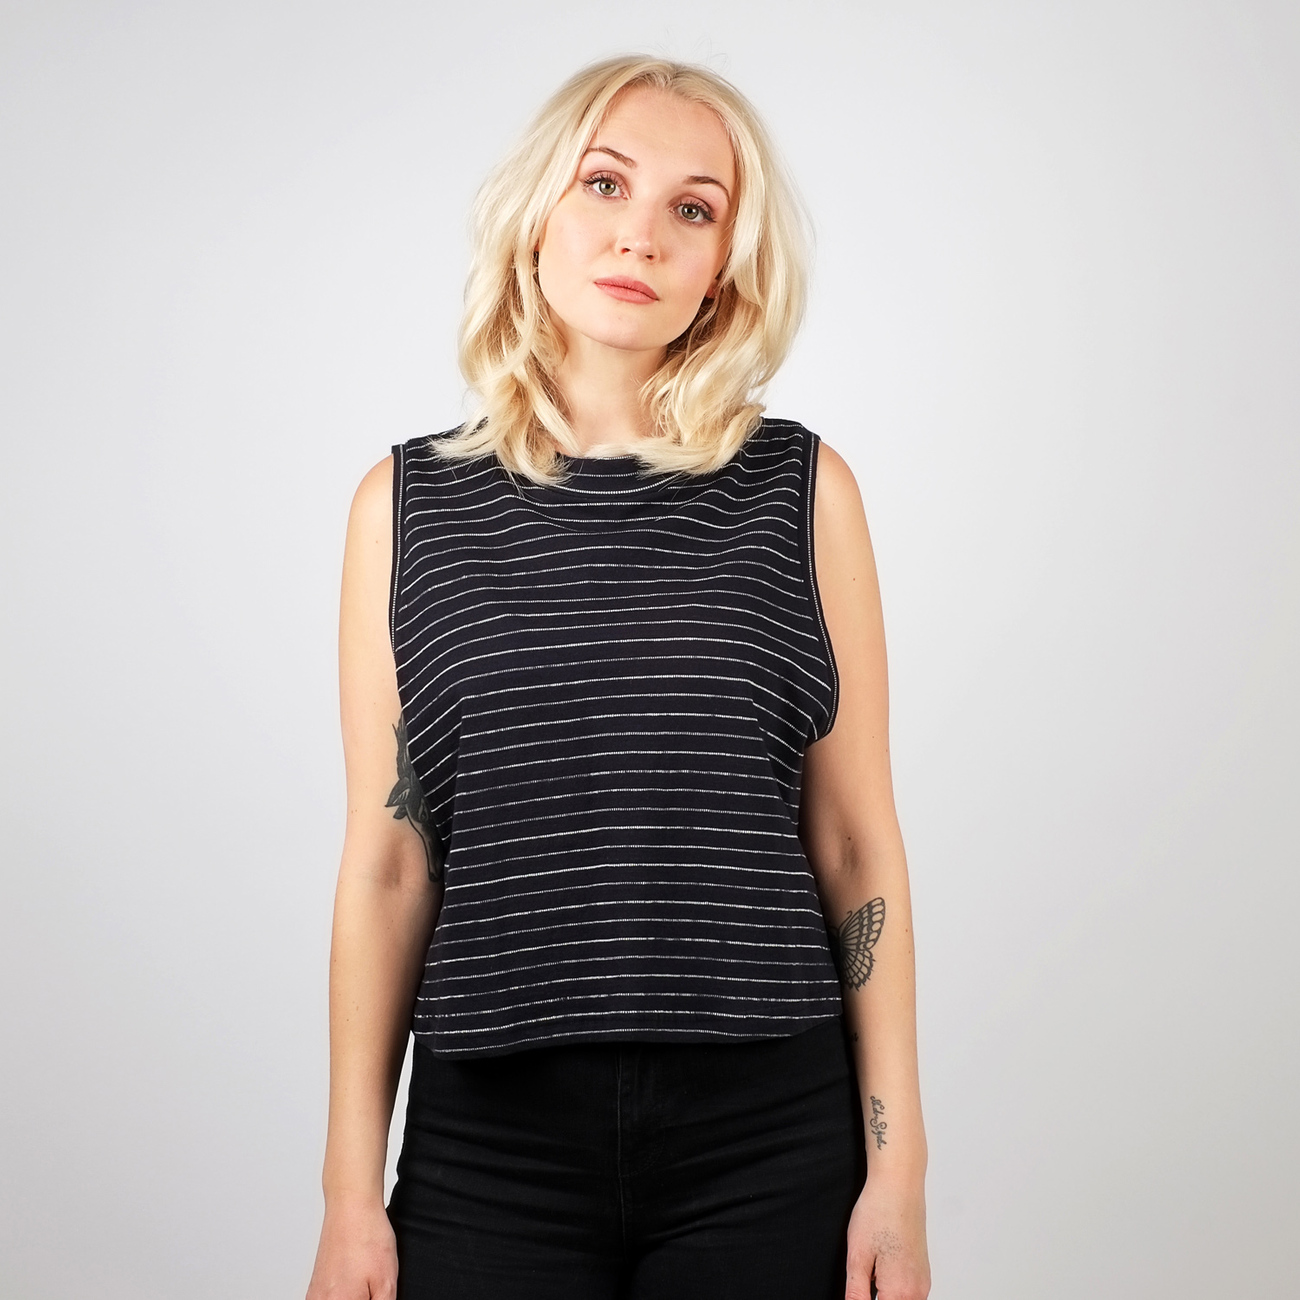 Top Namsos Jacquard Stripes Black